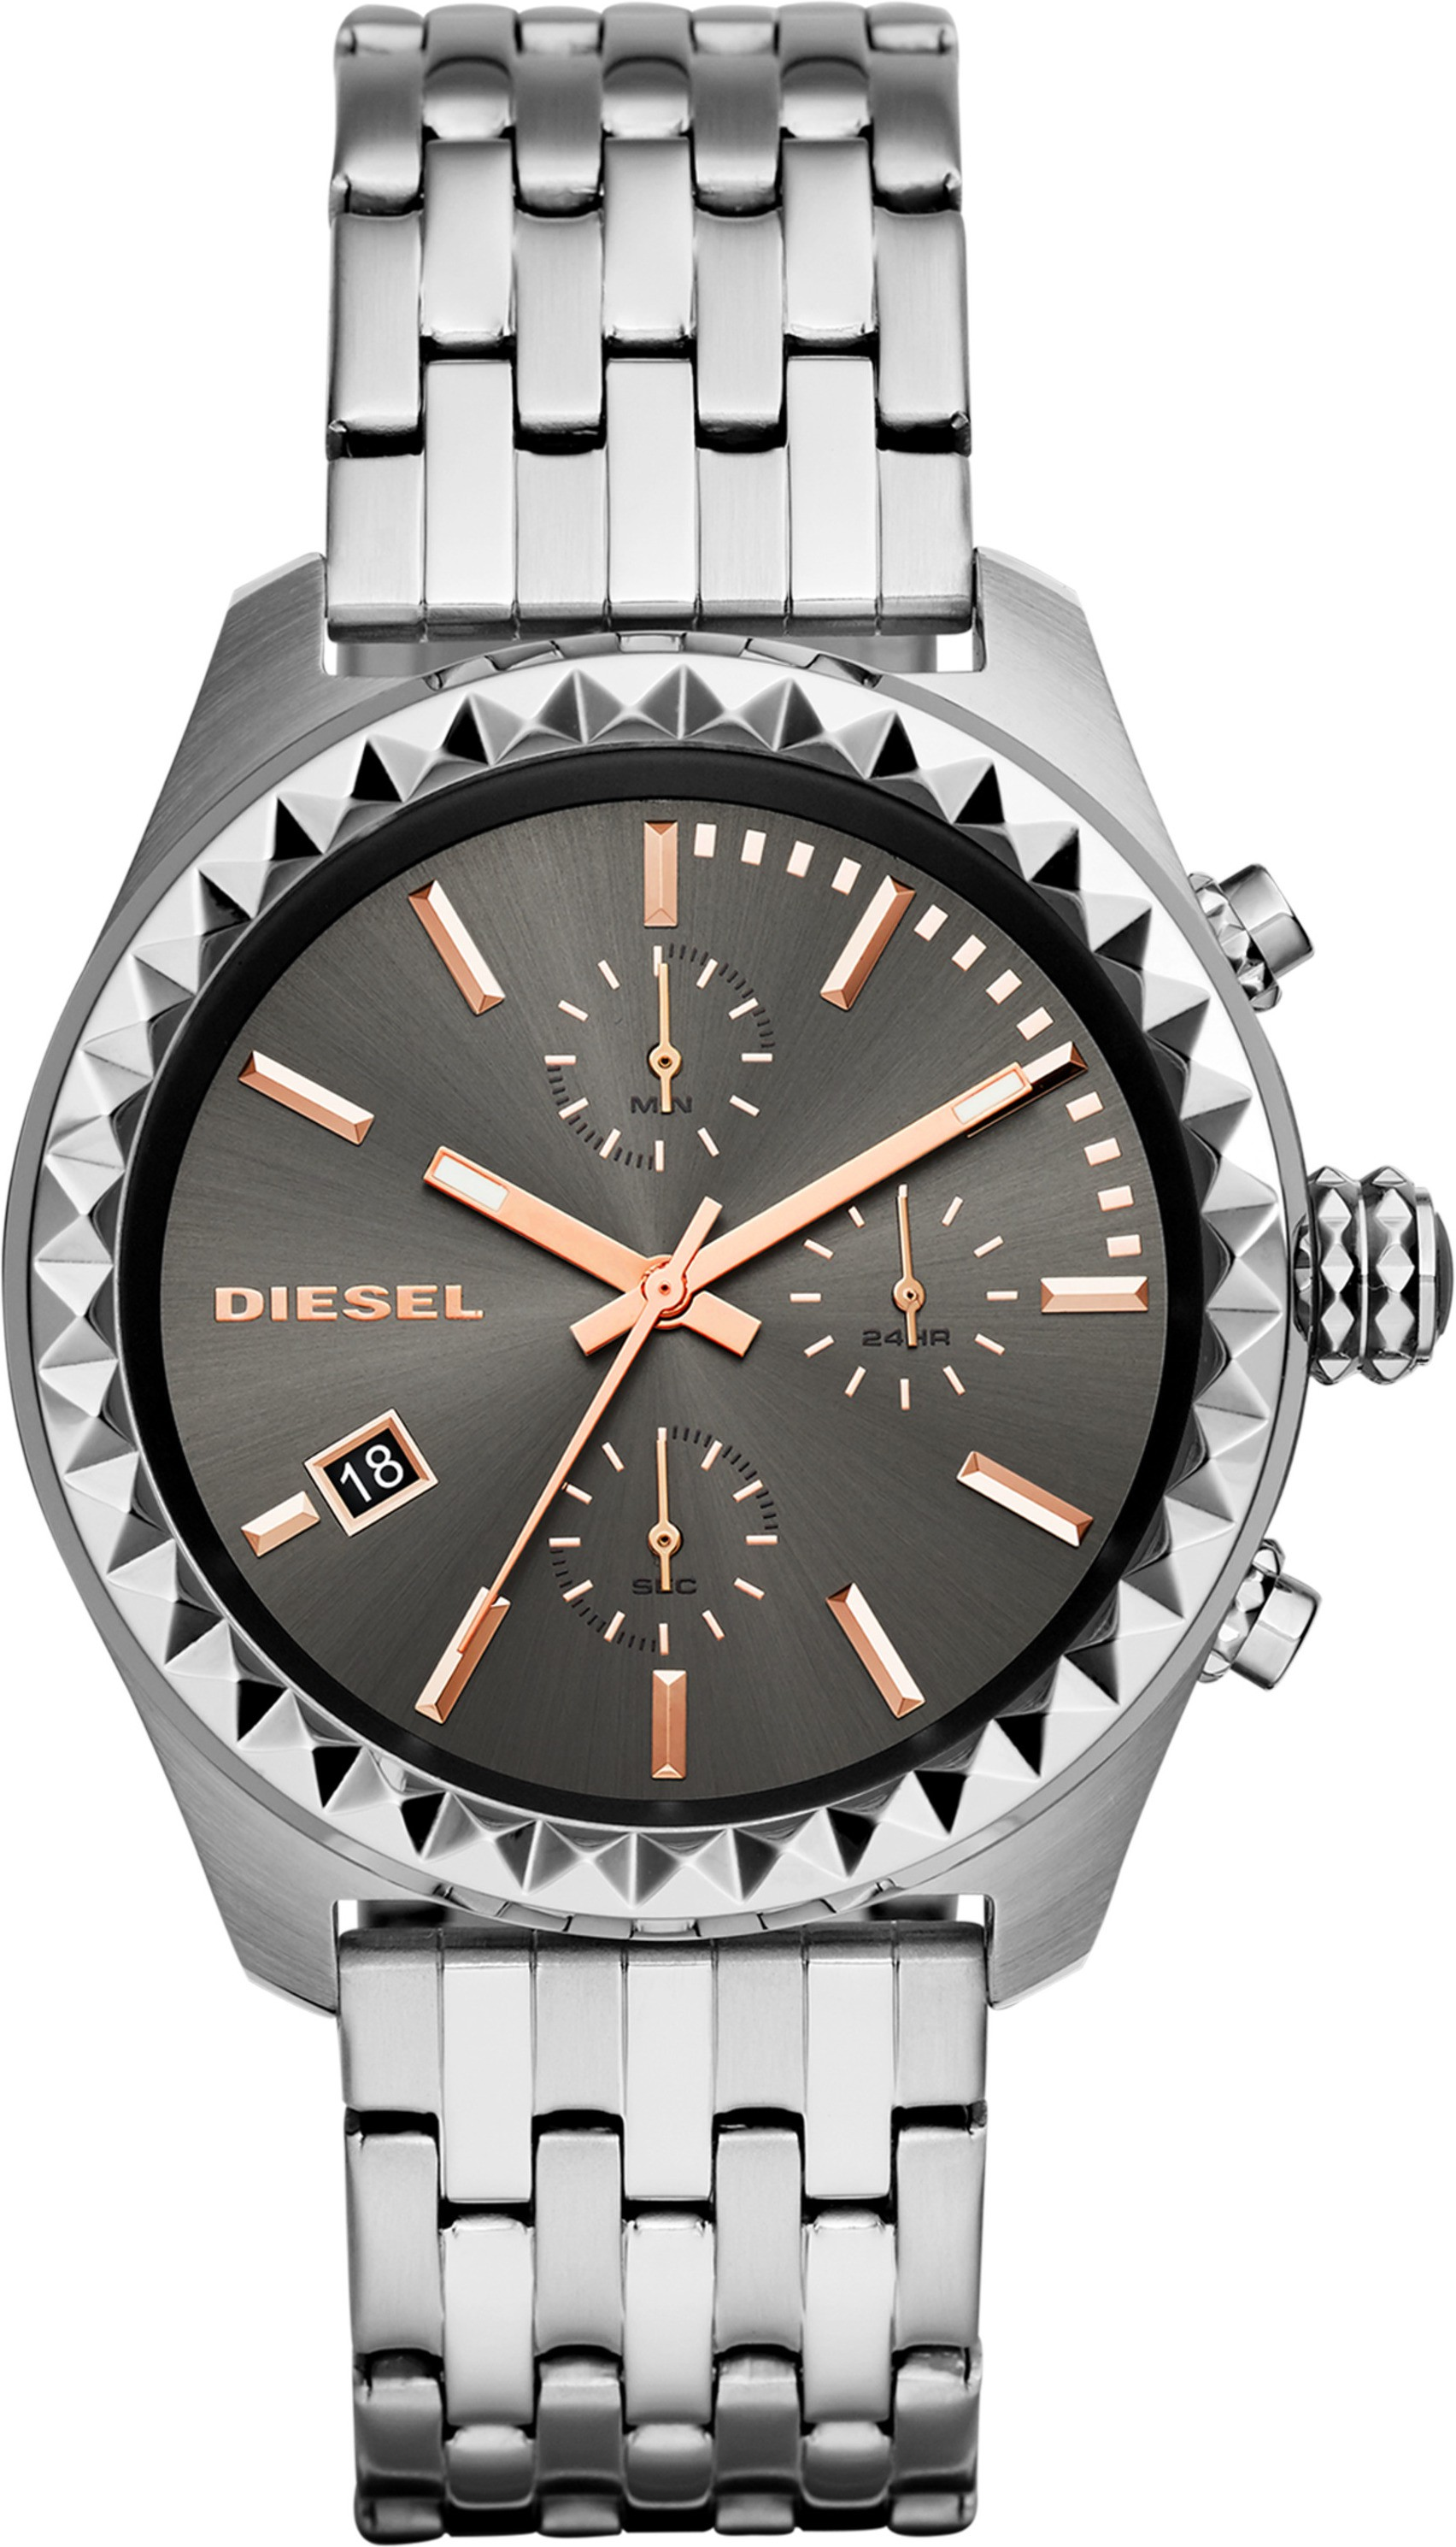 Deals - Delhi - Fossil, DKNY... <br> Womens Watches<br> Category - watches<br> Business - Flipkart.com